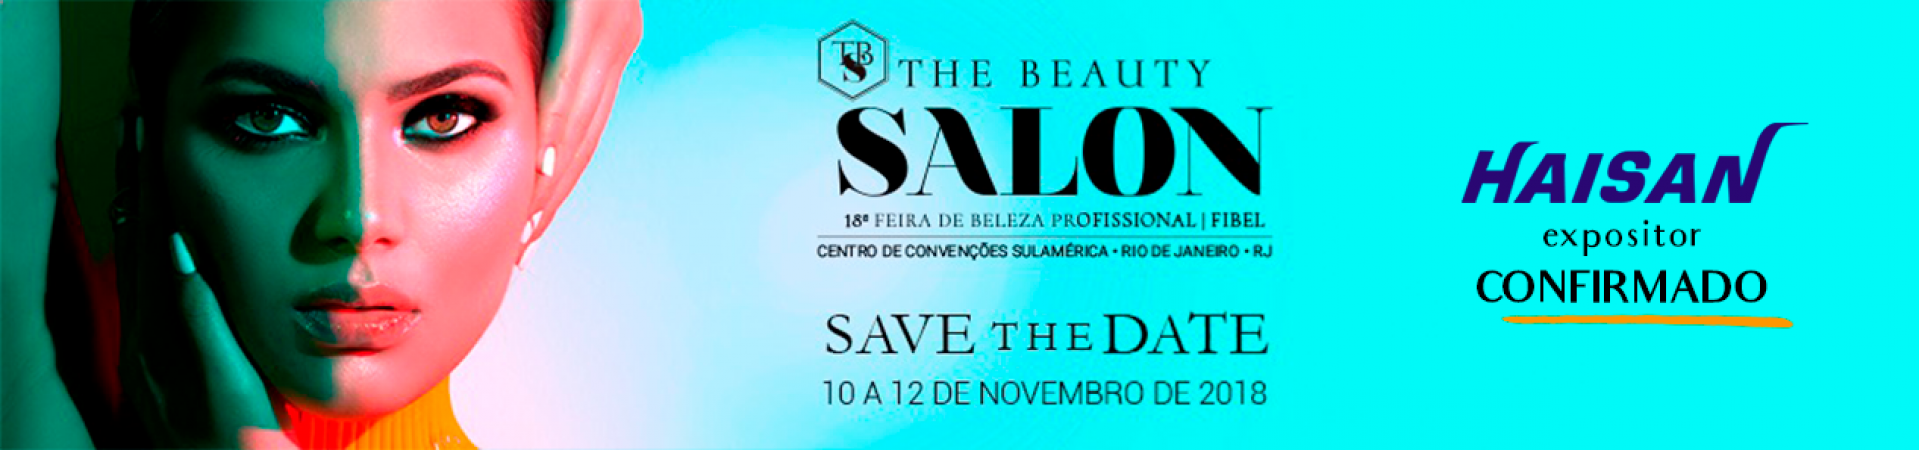 Feira The Beauty Salon